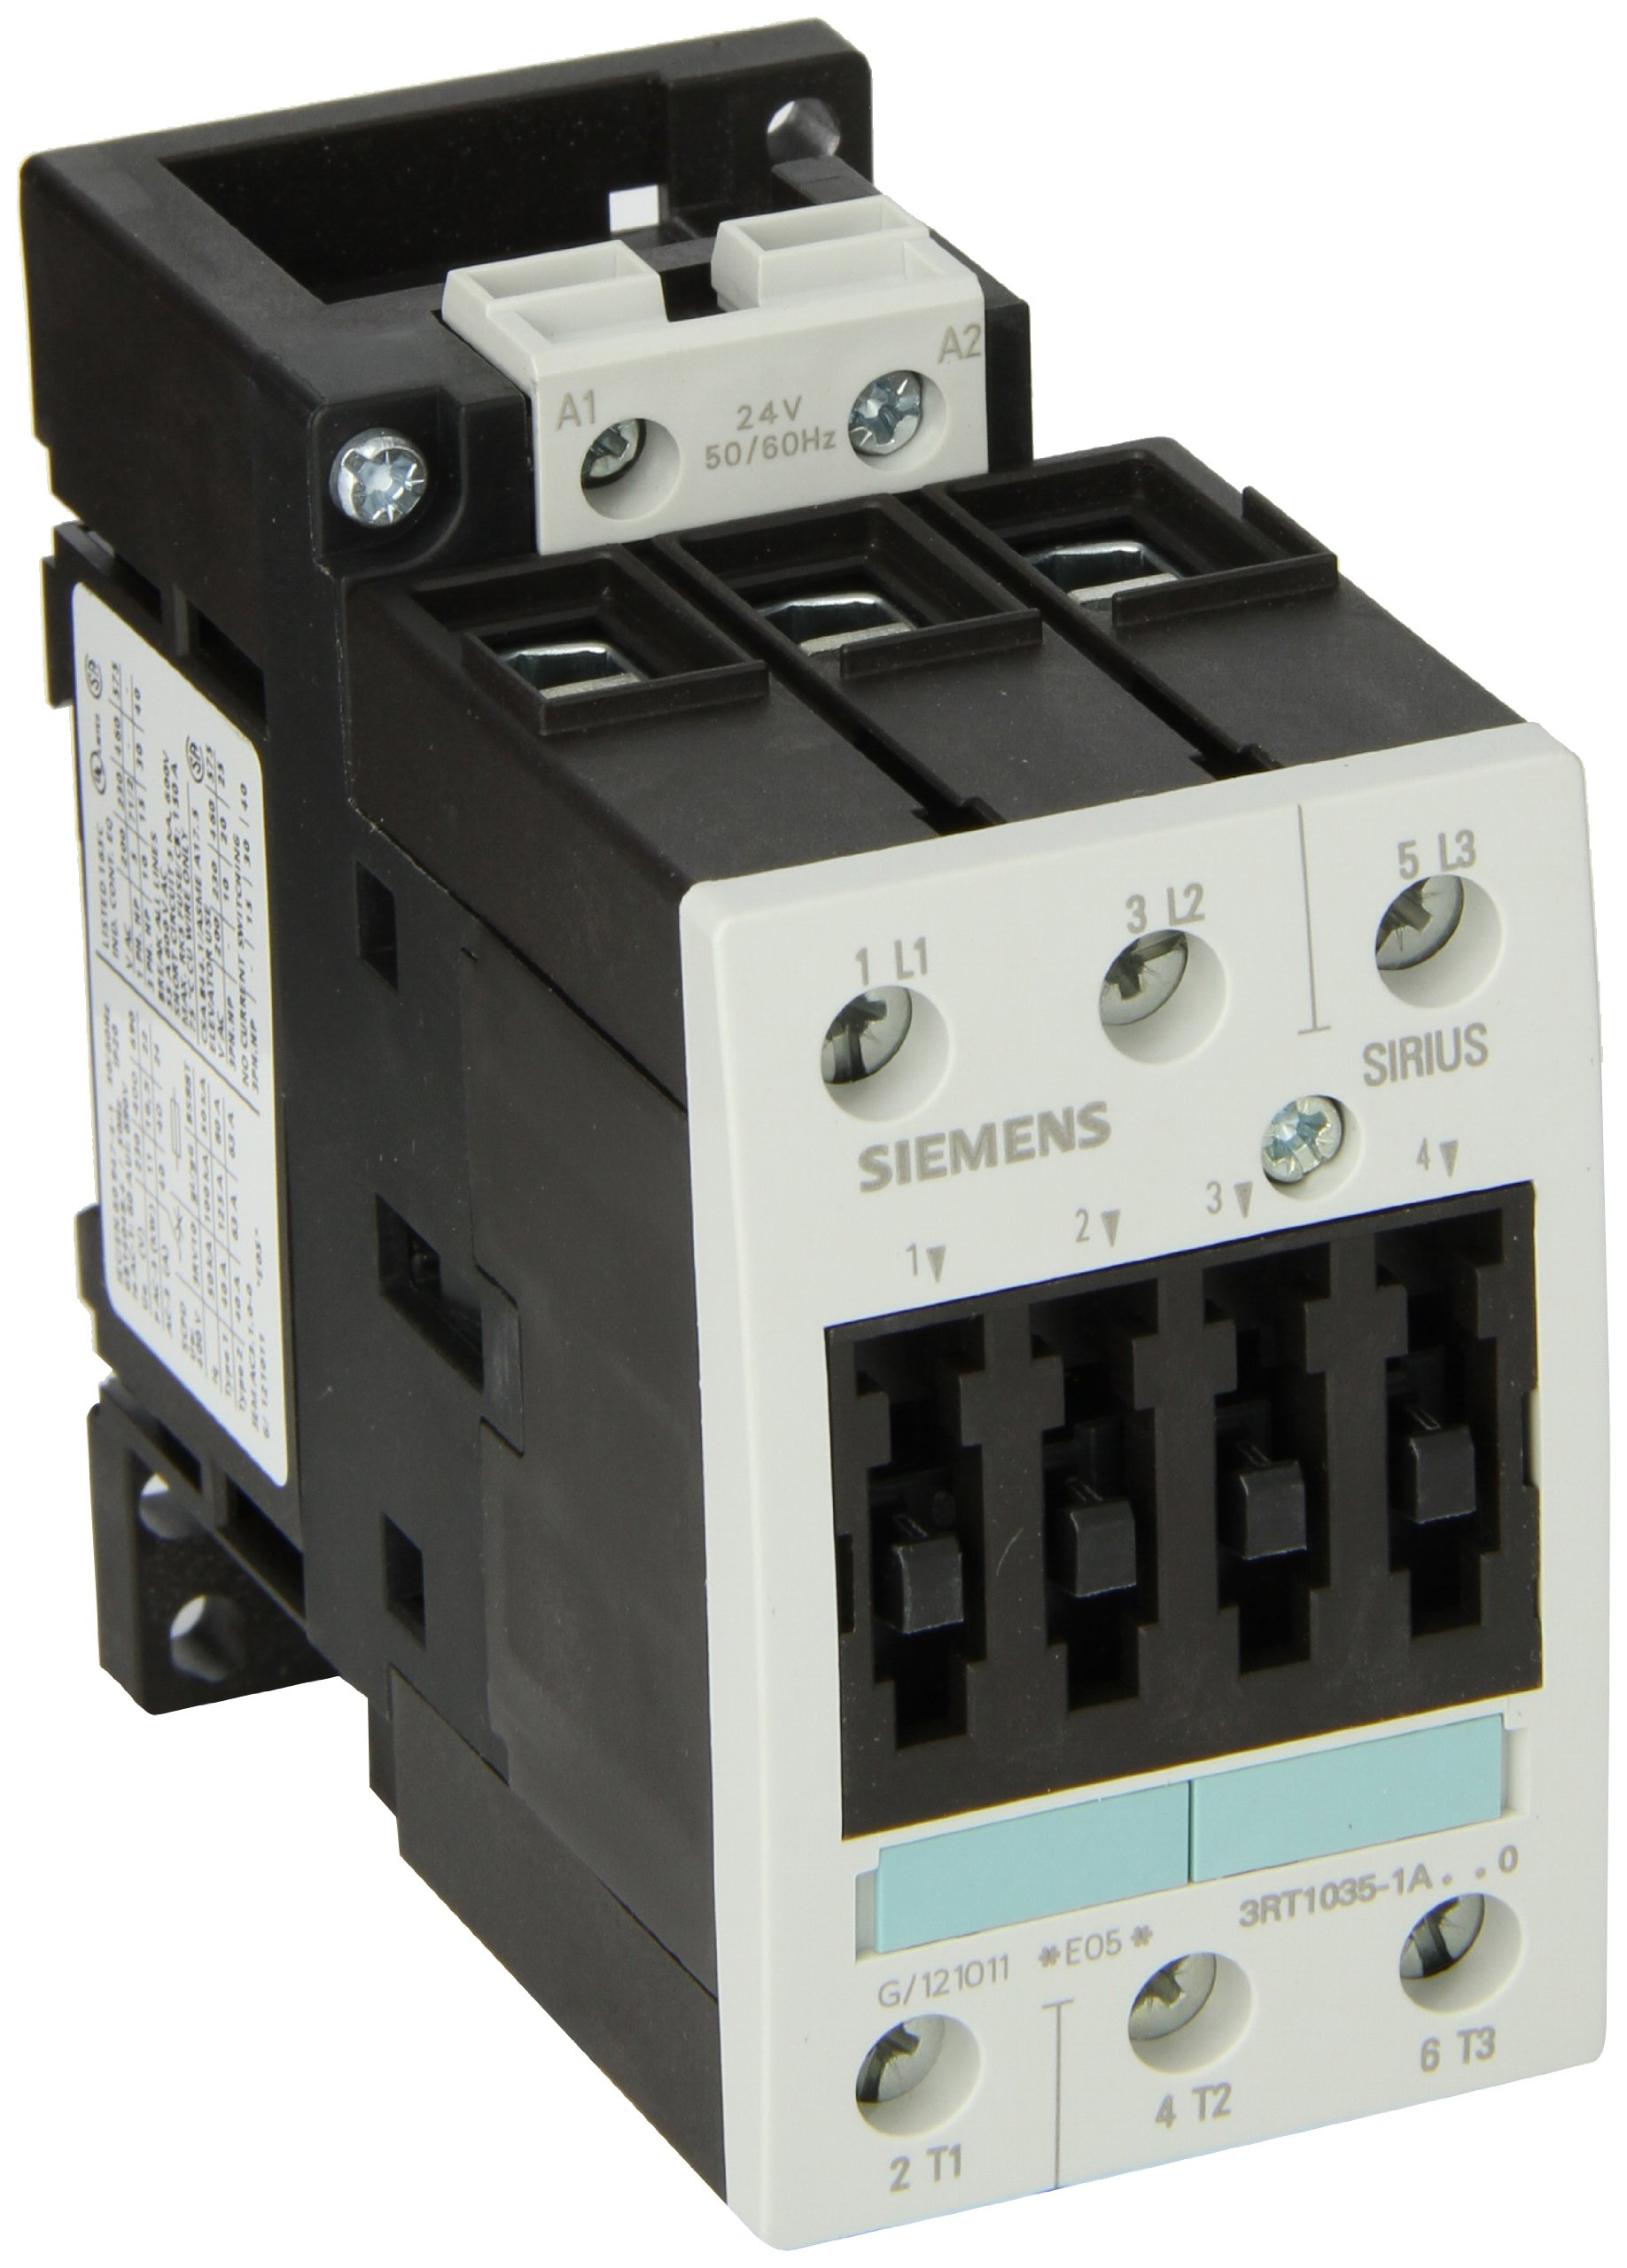 Siemens 3RT10 35-1AC20 Motor Contactor, 3 Poles, Screw Terminals, S2 Frame Size, 24V at 50 and 60Hz AC Coil Voltage Voltage